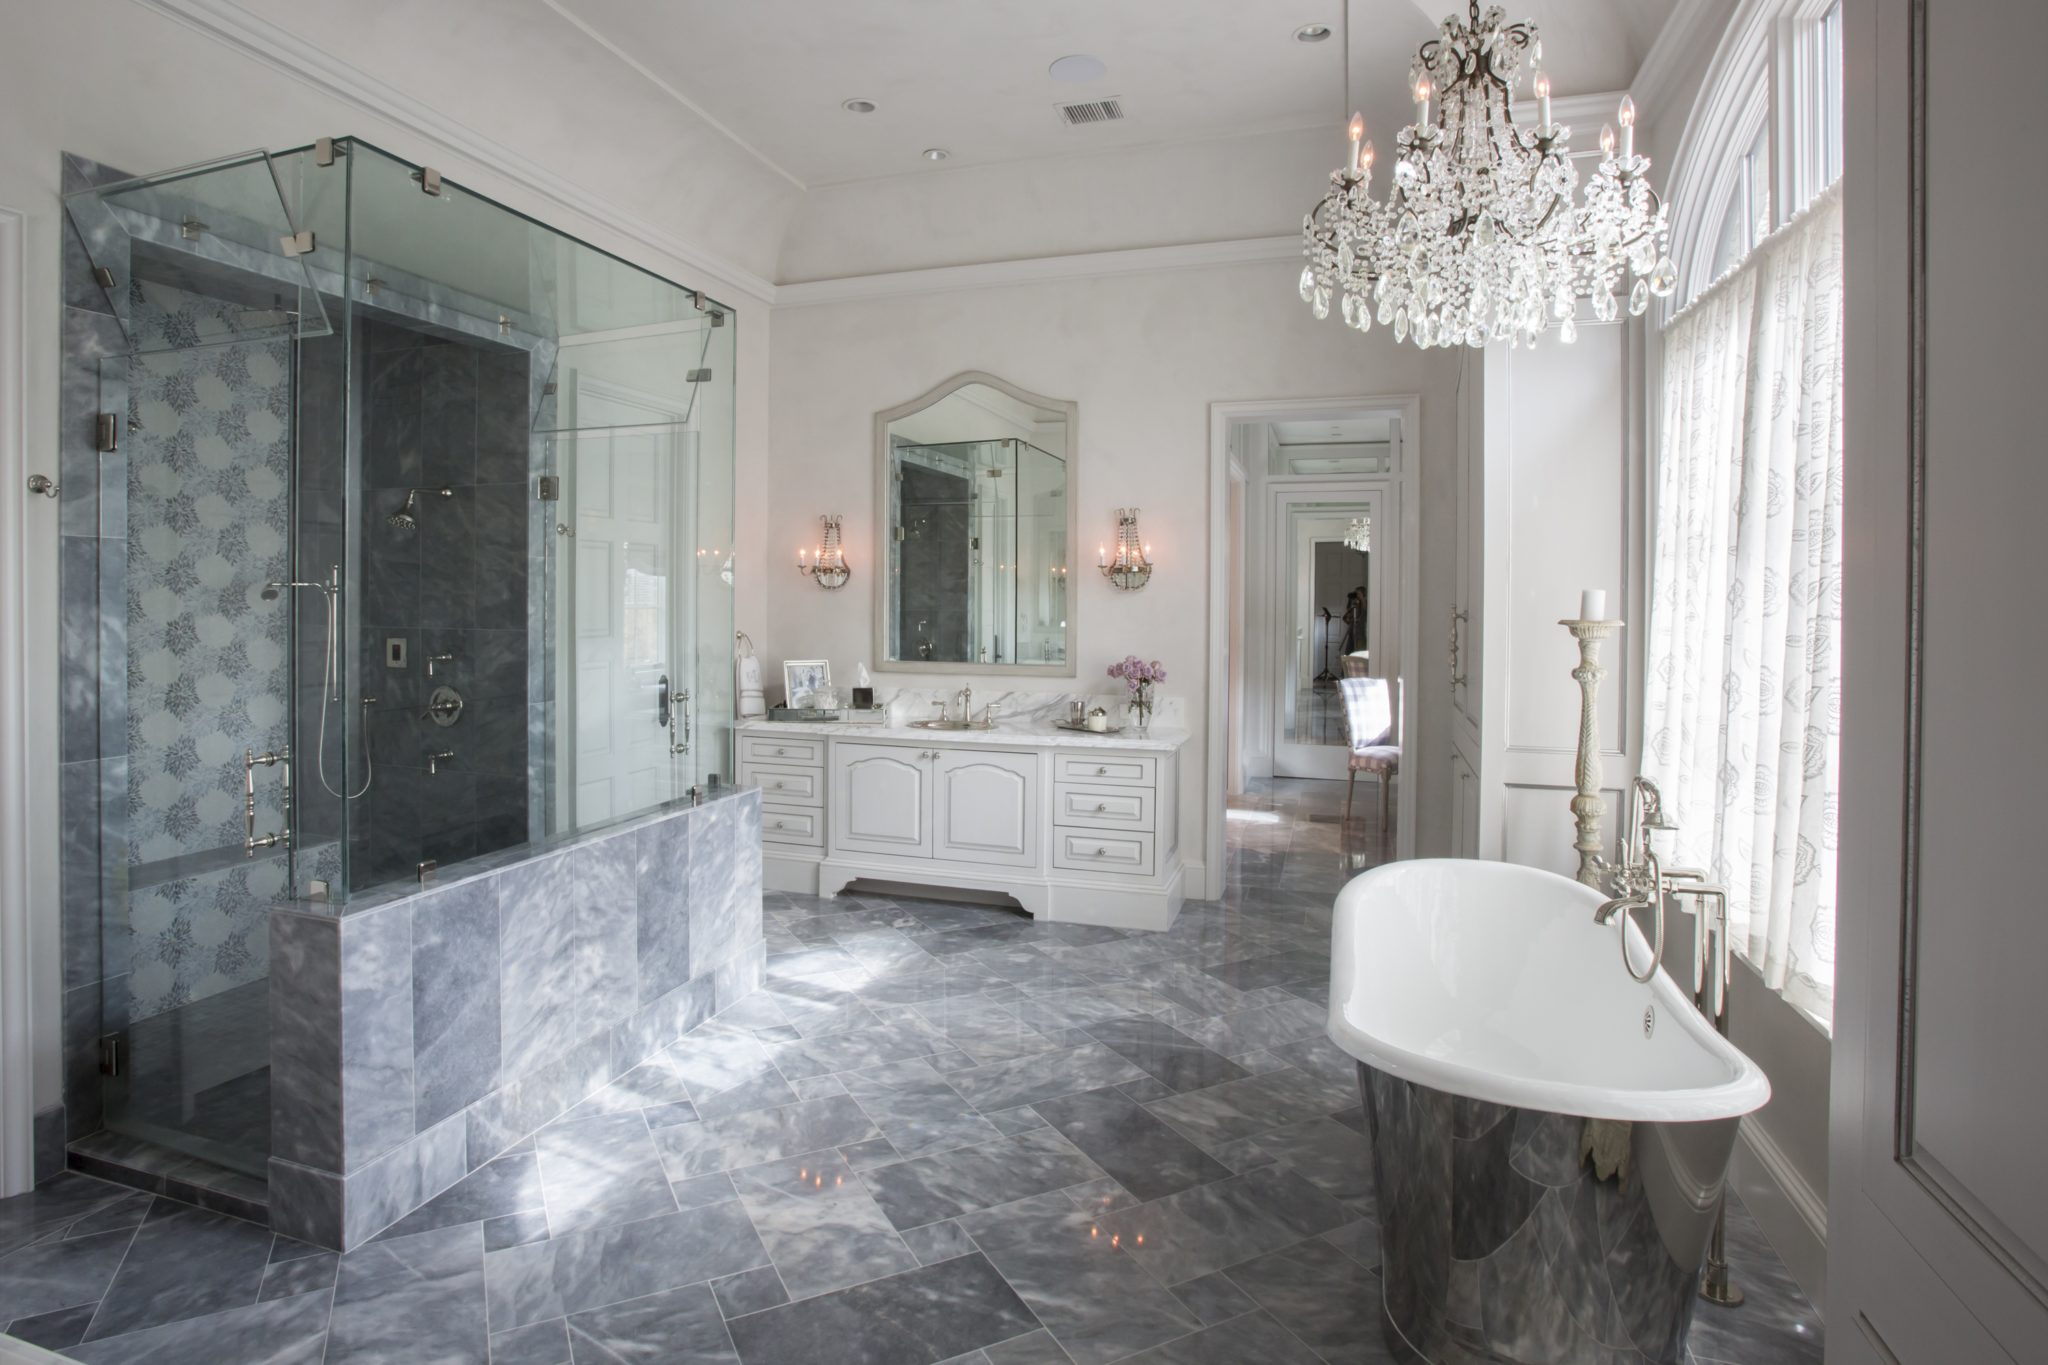 Luxurious master bath with a free standing tub & custom tile work by Triangle Interiors